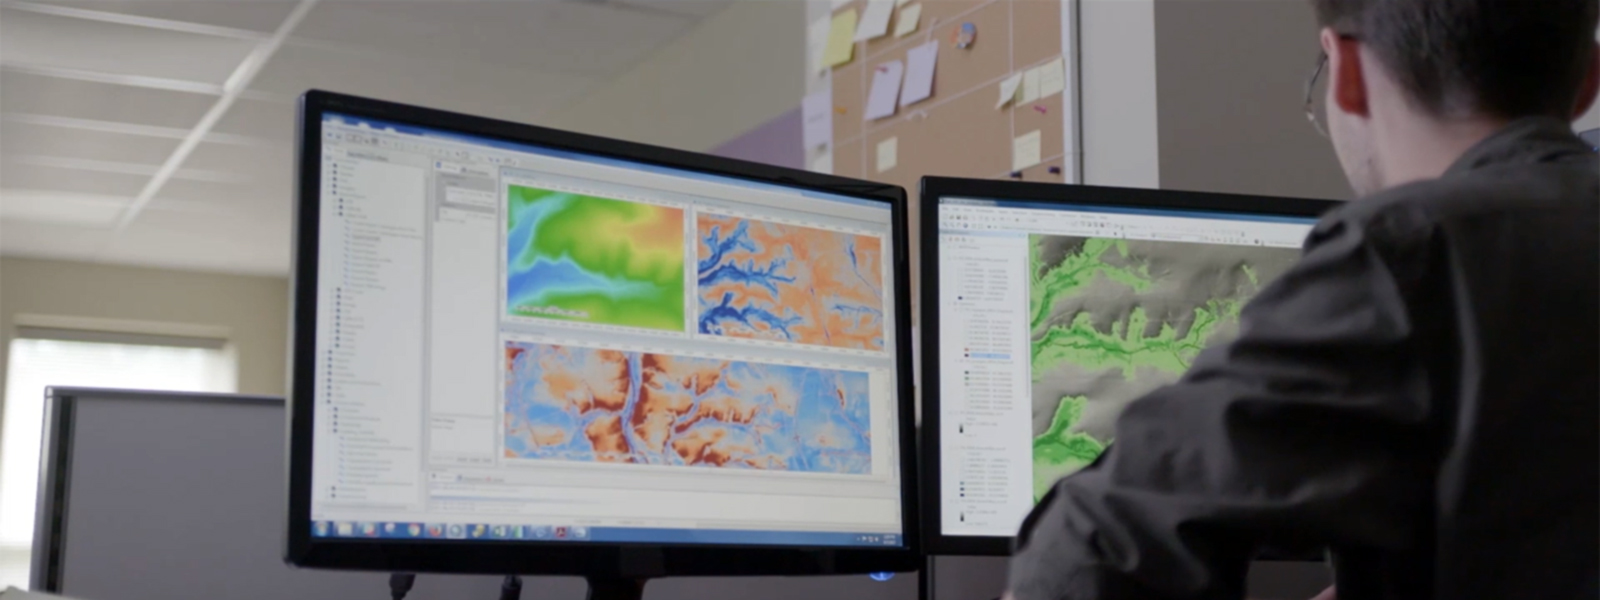 Man works on 2 monitors showing mapping application.